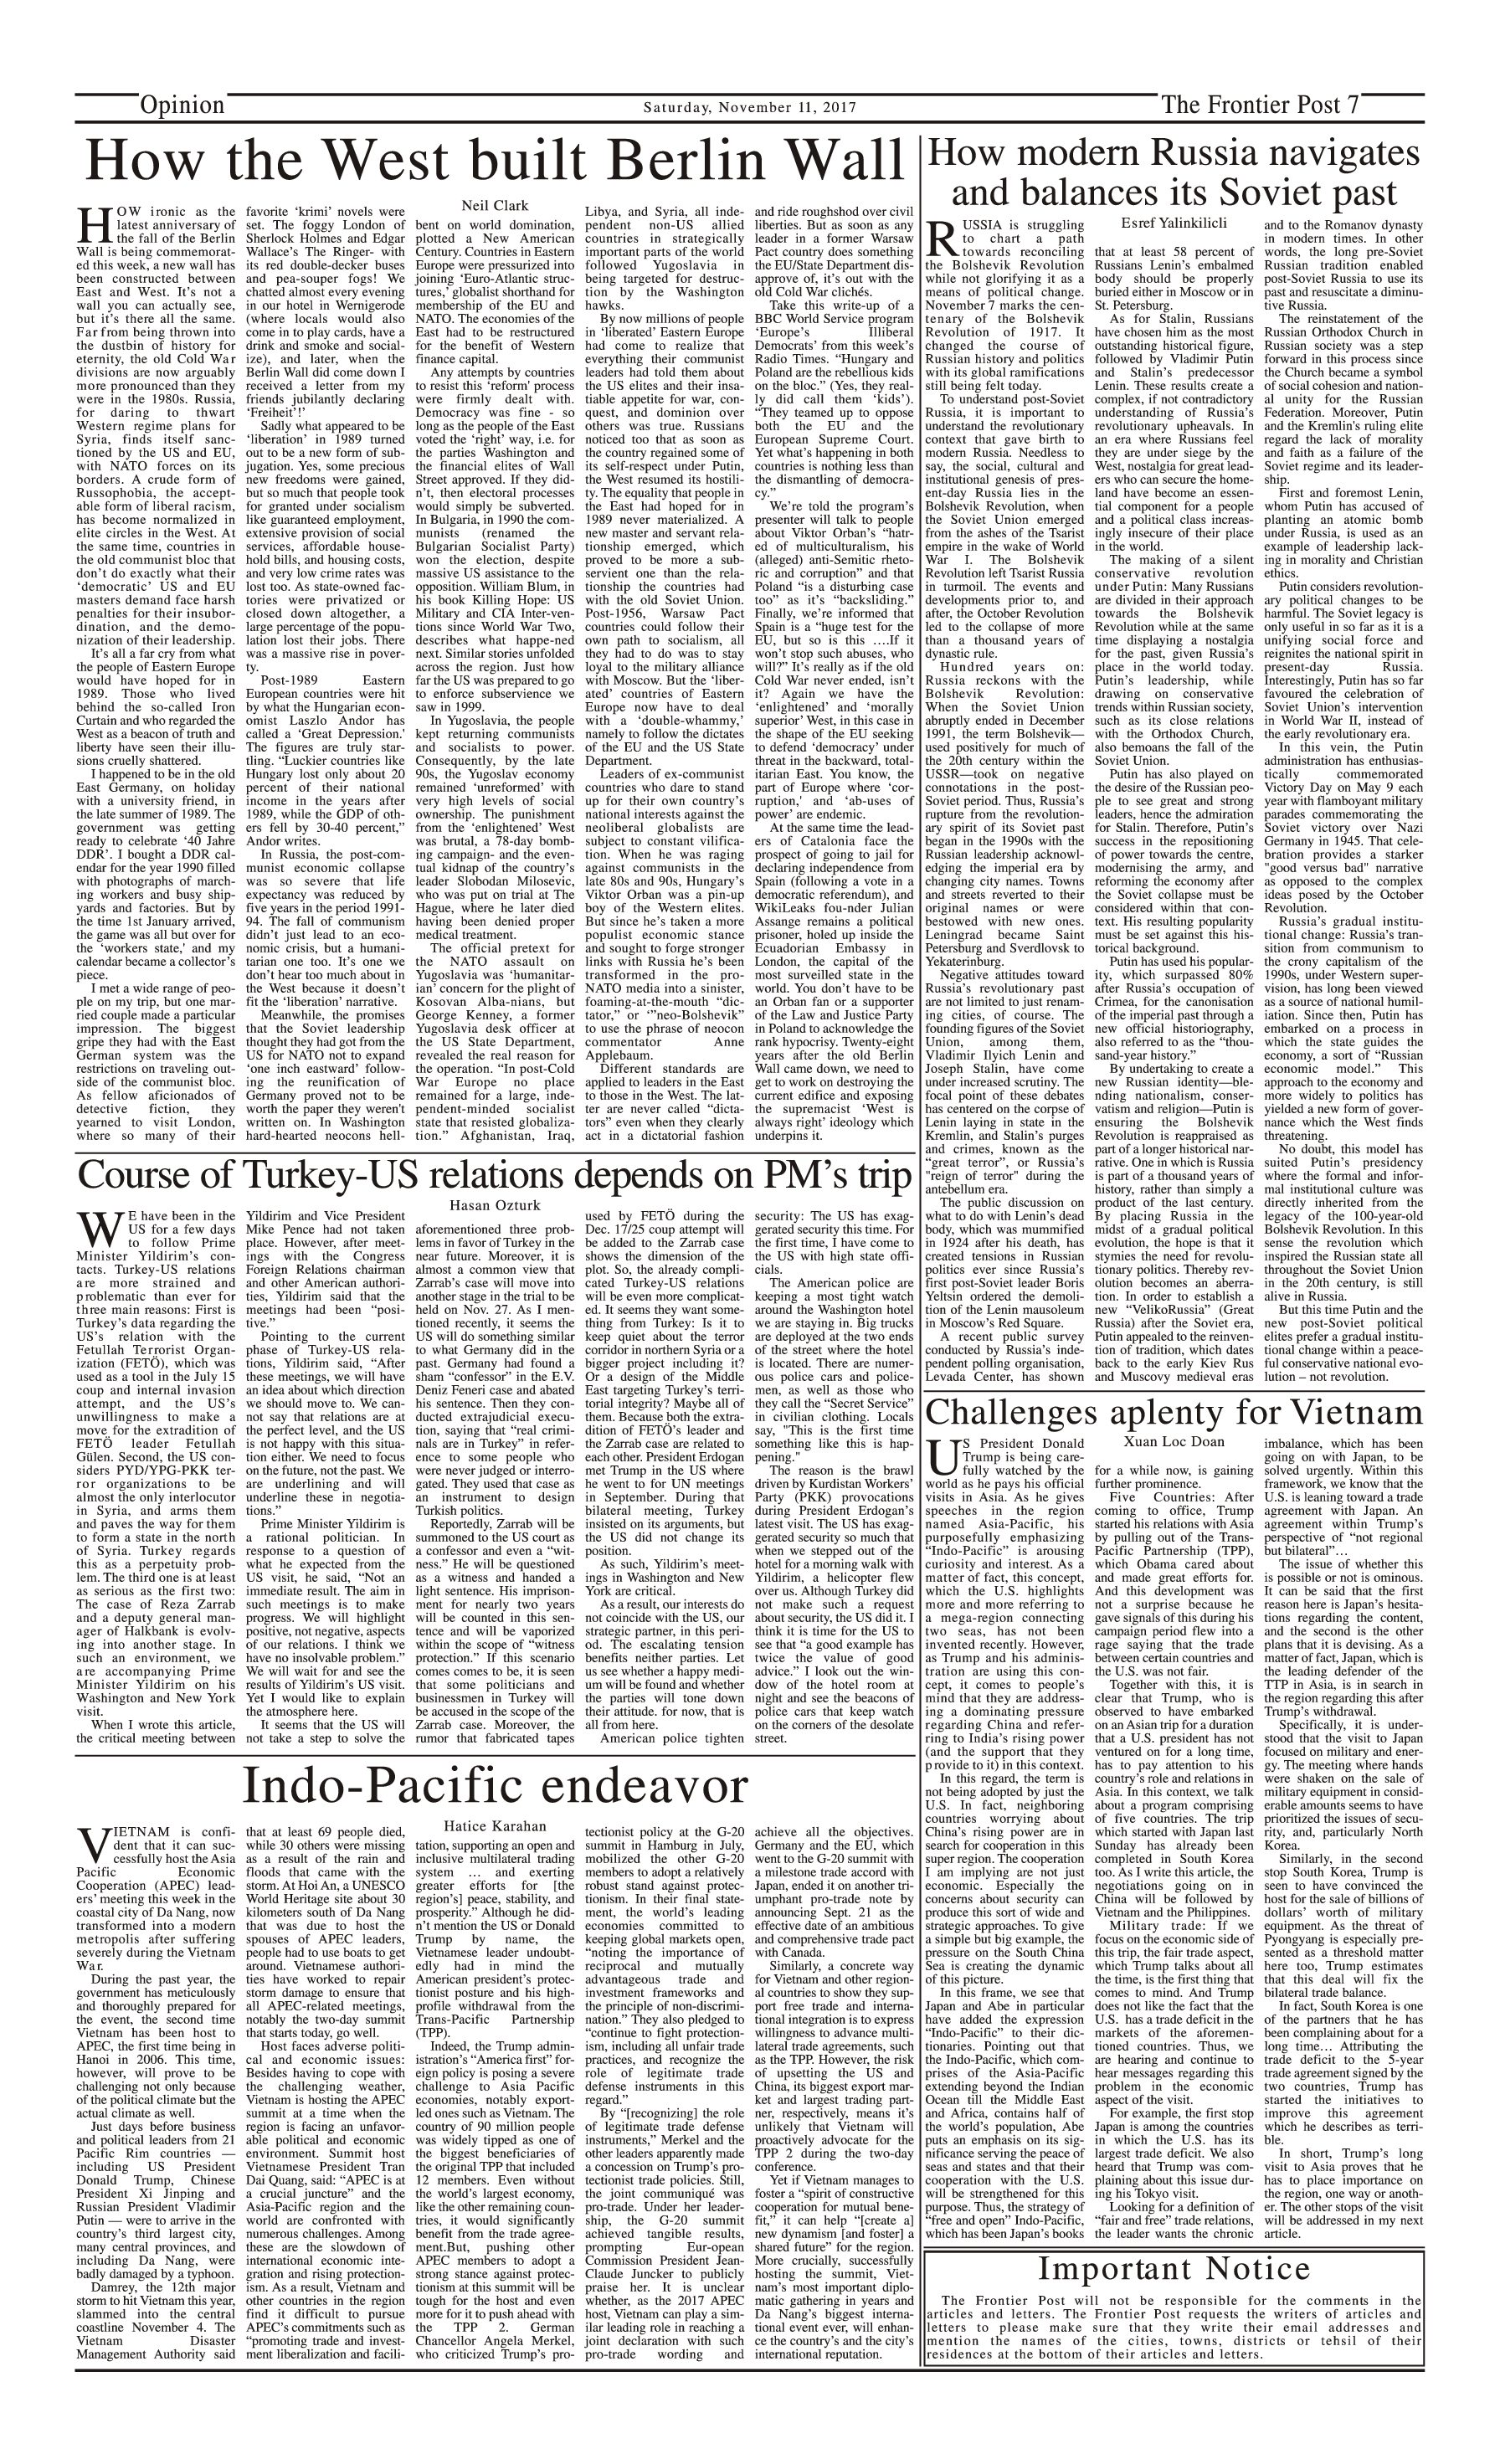 Opinion Page 11-11